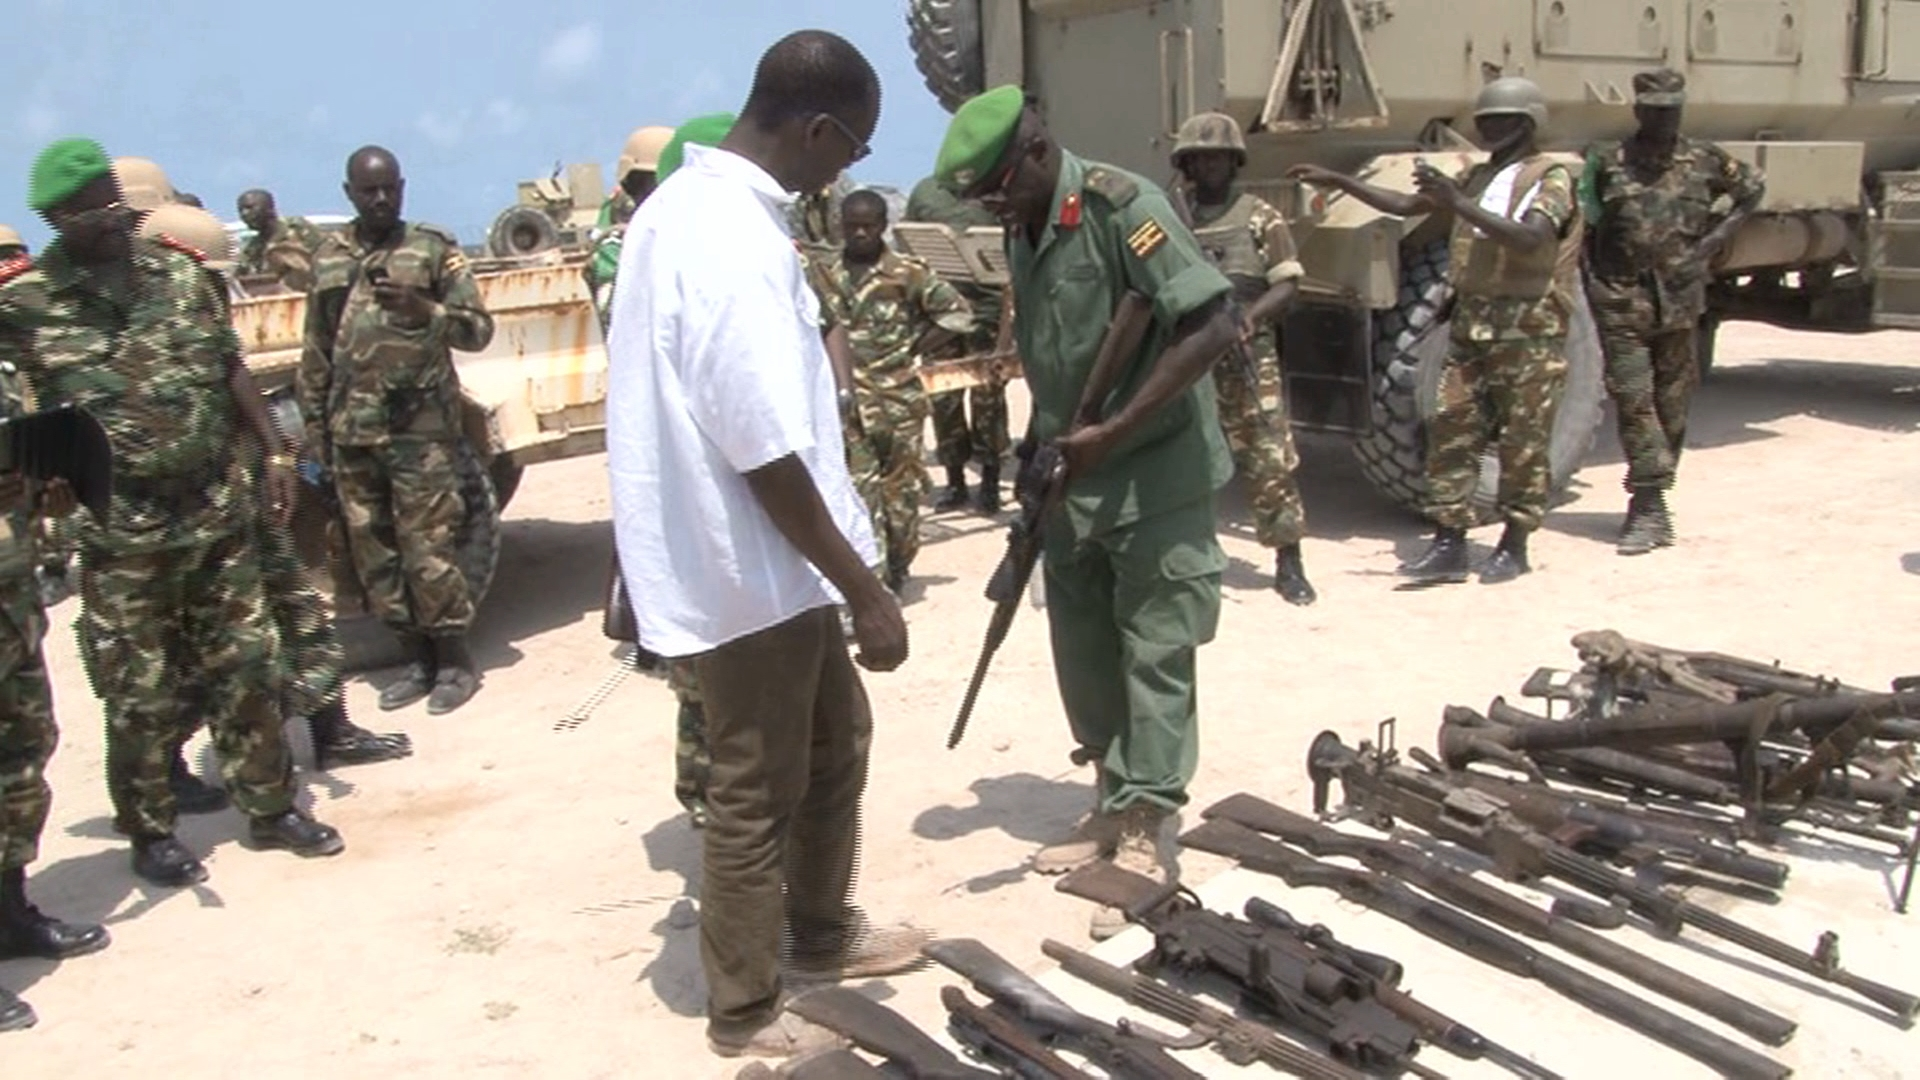 Selected frame from video story SOMALIA / AL SHABAAB WEAPONS